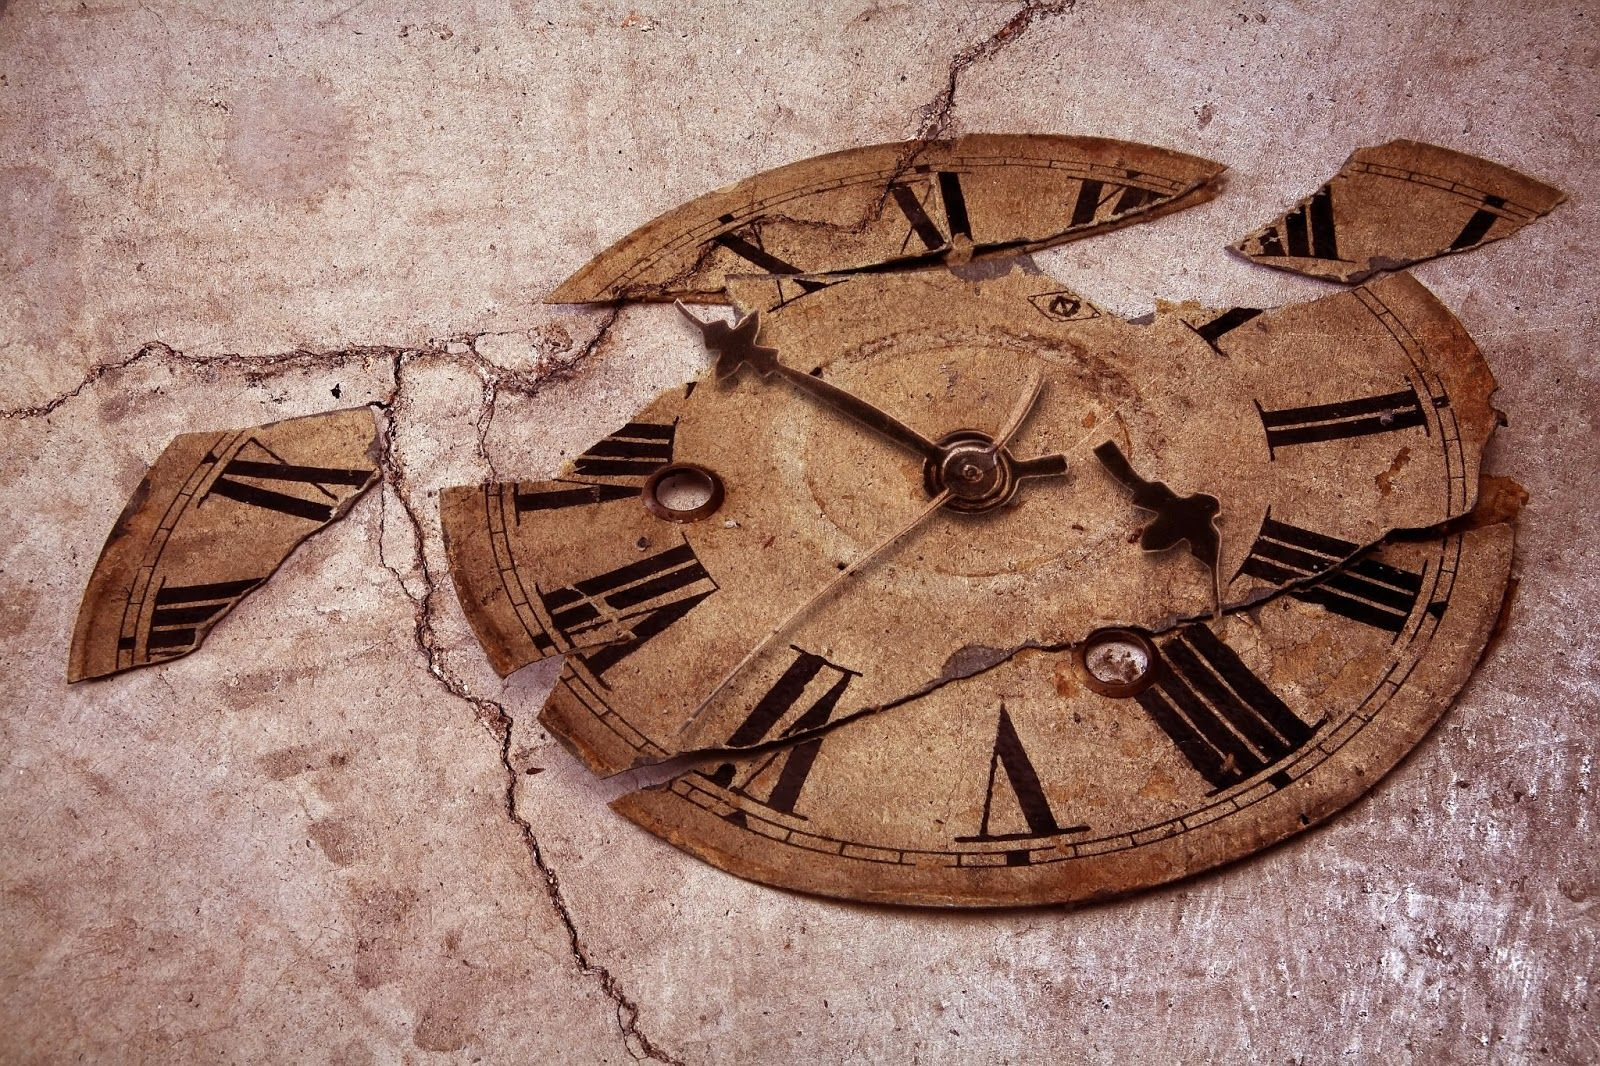 broken clock Have You Ever Seen Old... Old fashioned